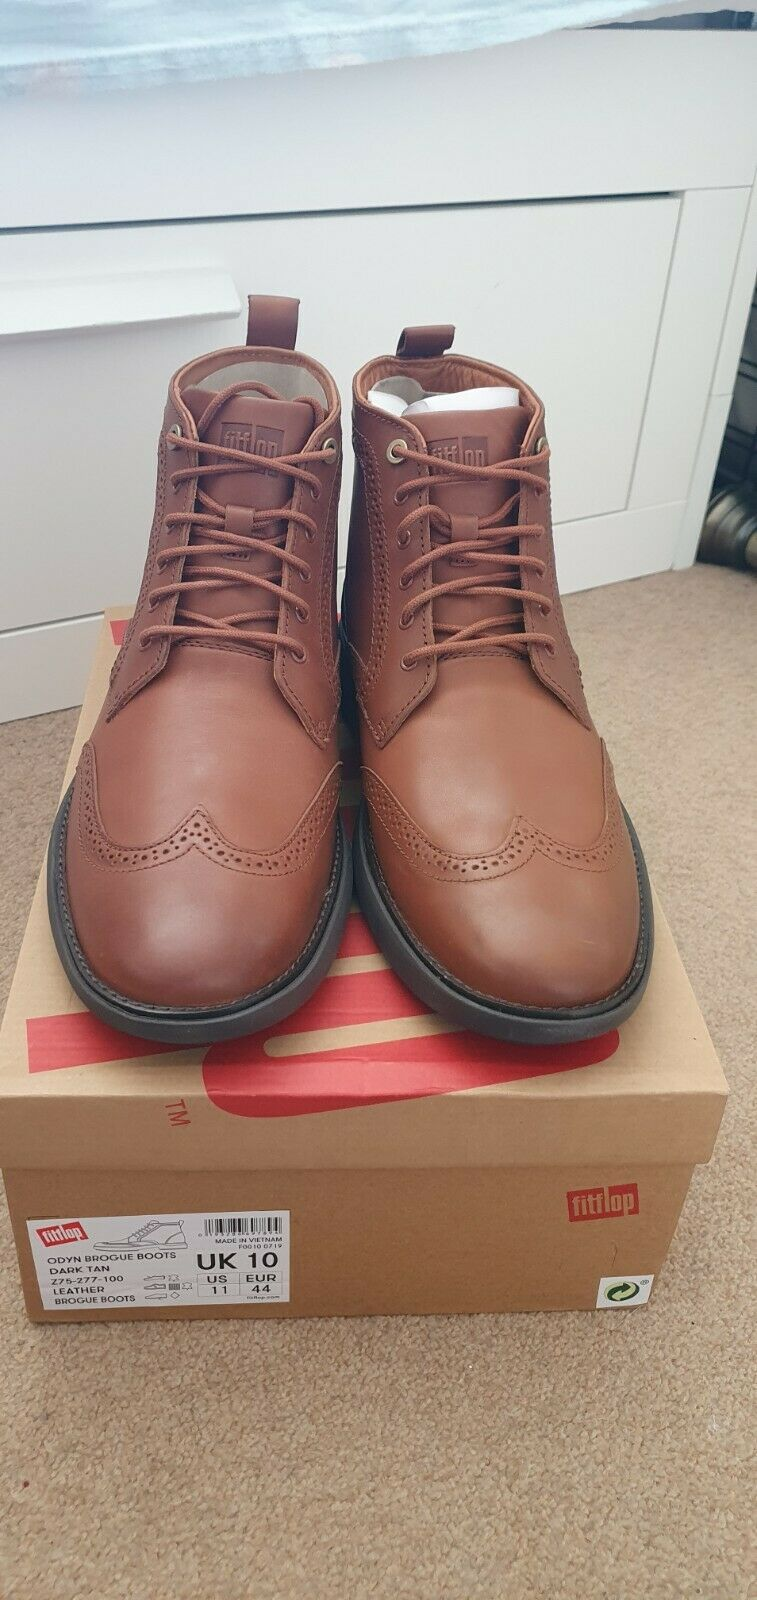 Fitflop Lamont Leather Chelsea boots brown mens size 10